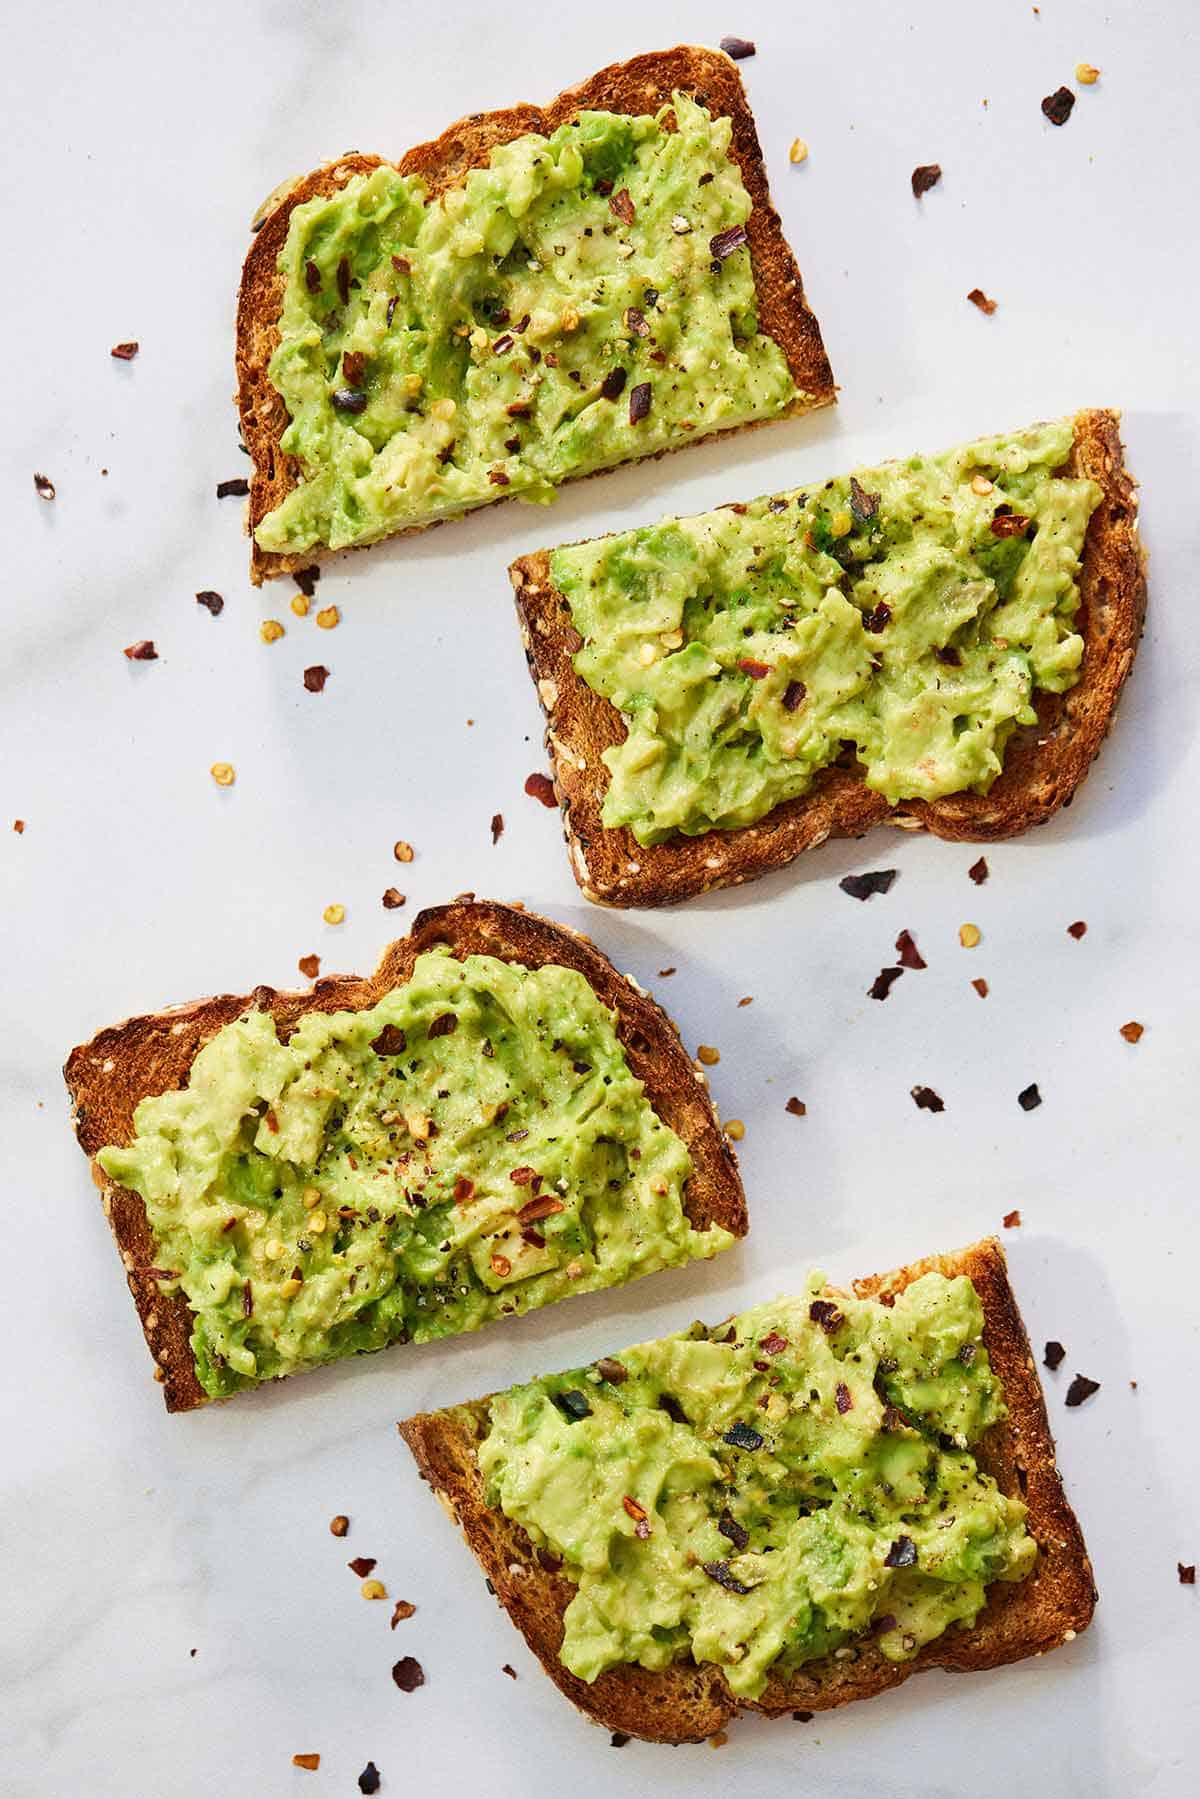 Two slices of avocado toast, each cut in half.